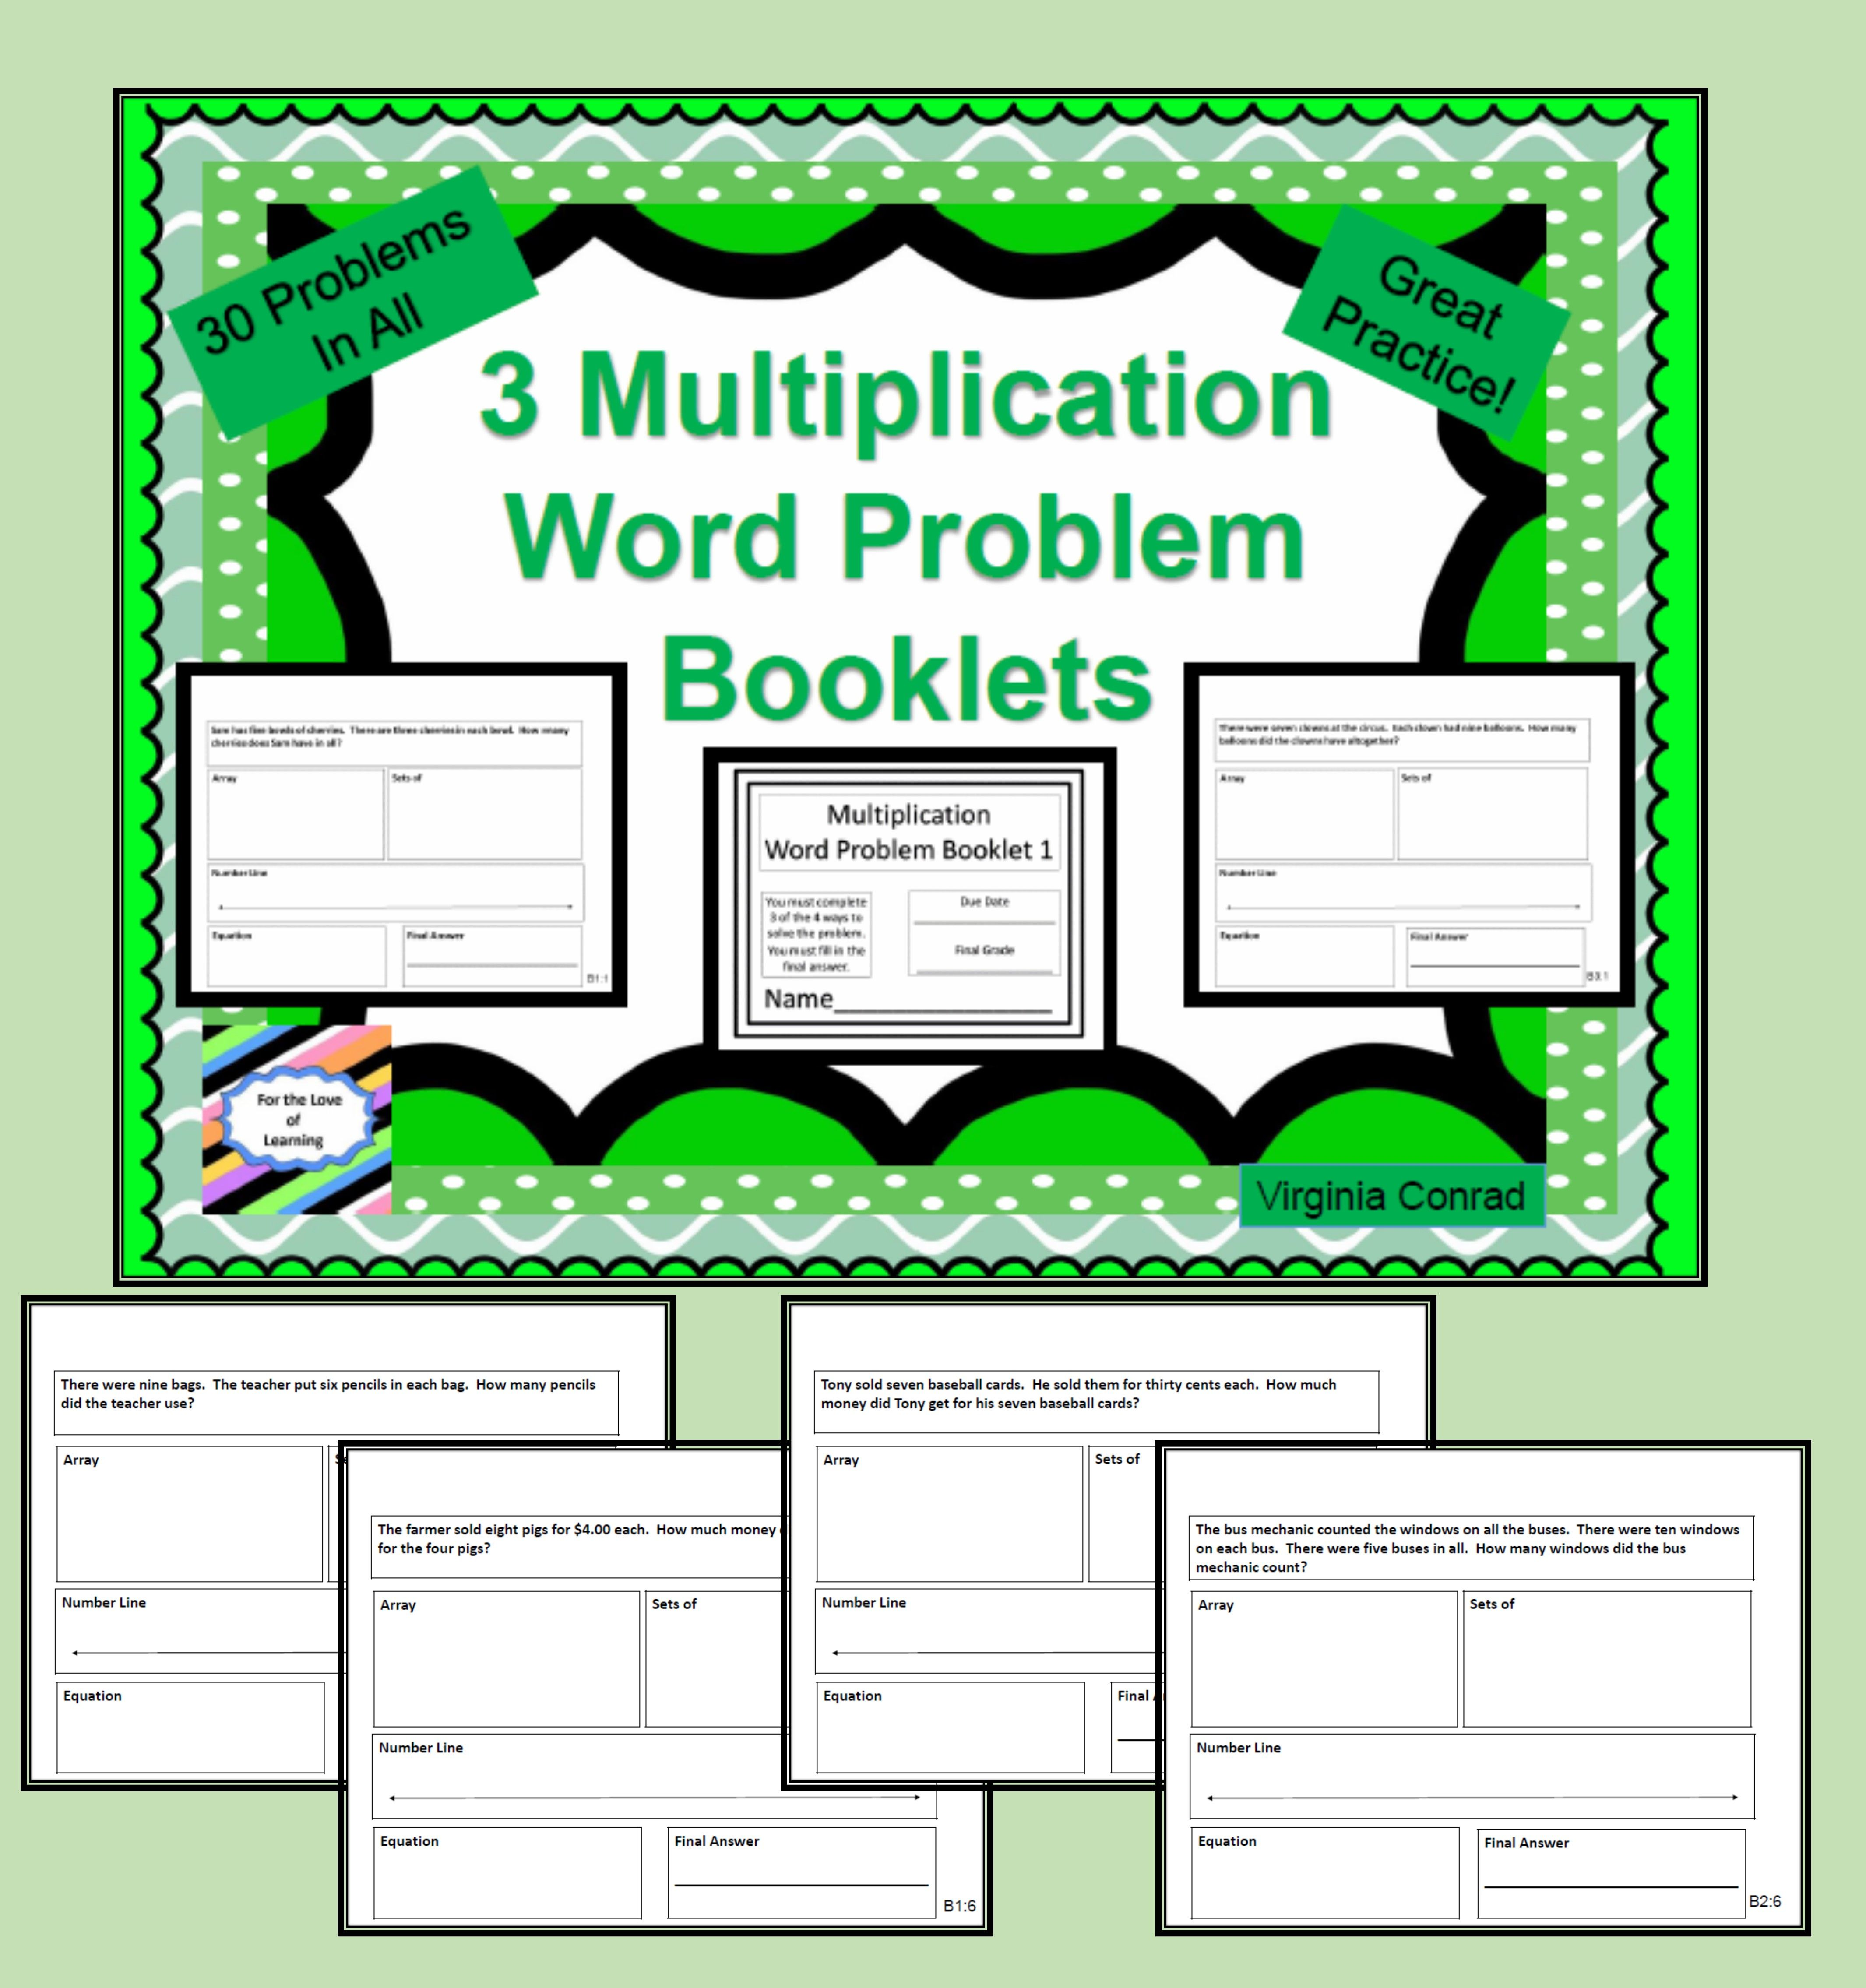 Multiplication Word Problem Booklets